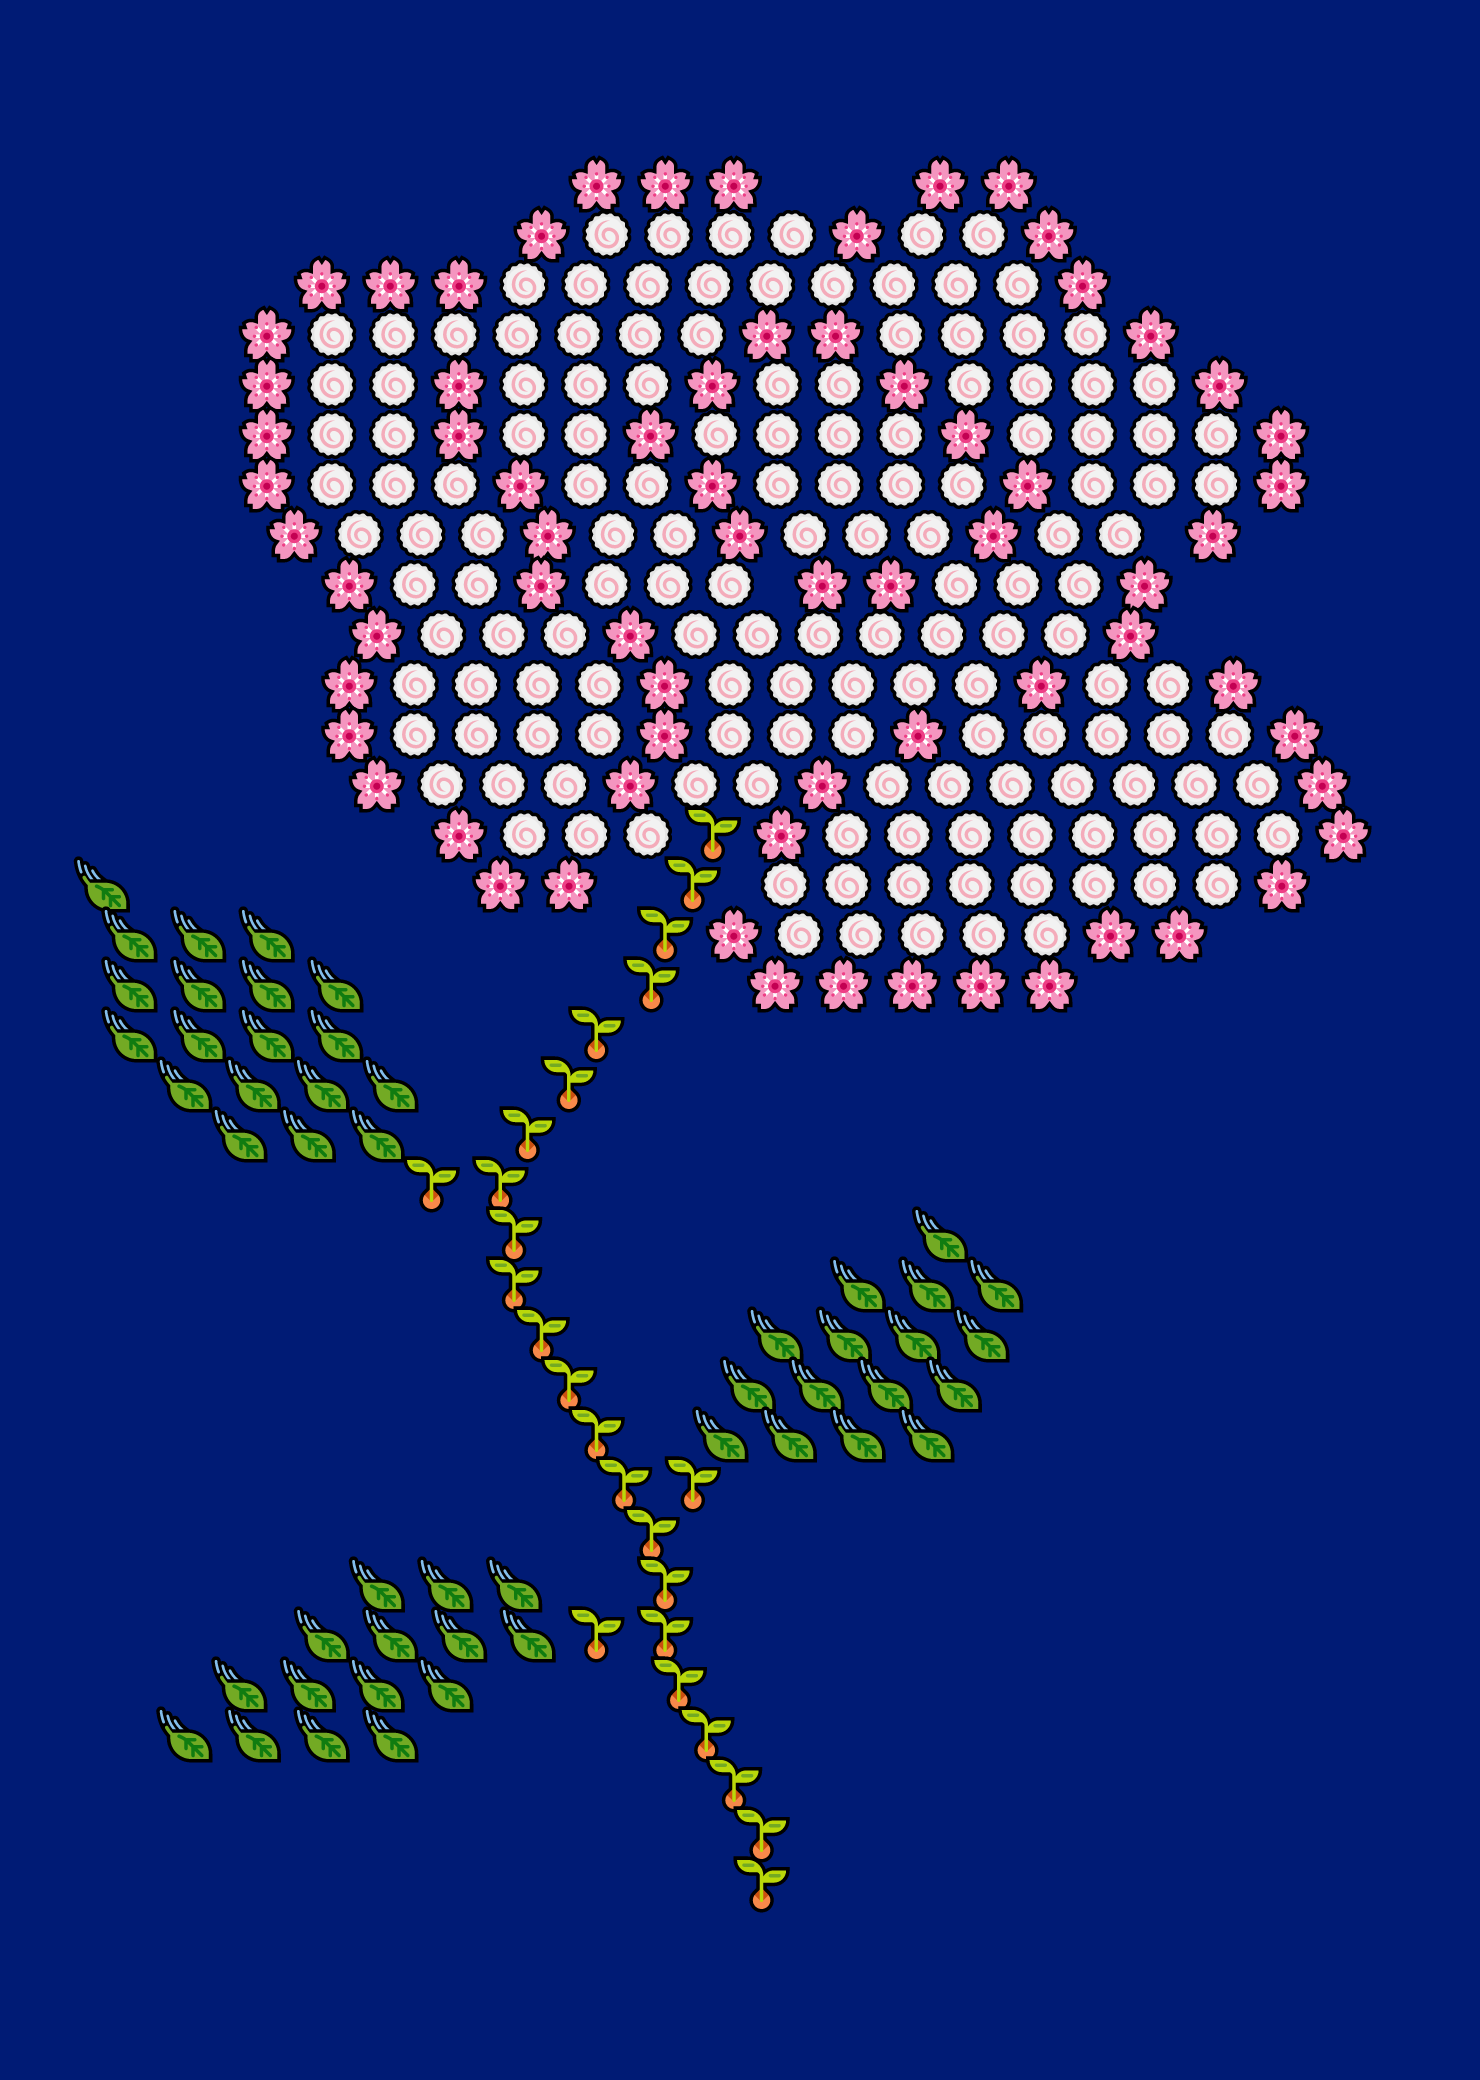 "In this example, we paint a rose from just four Unicode pictograms. We use the ""cherry blossom"" and ""fish cake"" icons for the rose petals, ""seedling"" icon for the stem, and ""leaf fluttering in wind"" for the leaves. We place the flower on a large navy-blue canvas measuring 1400 by 2000 pixels and add a padding of 40 pixels around it. We align the rose to the middle of the image and set the Monospace font for the icons."